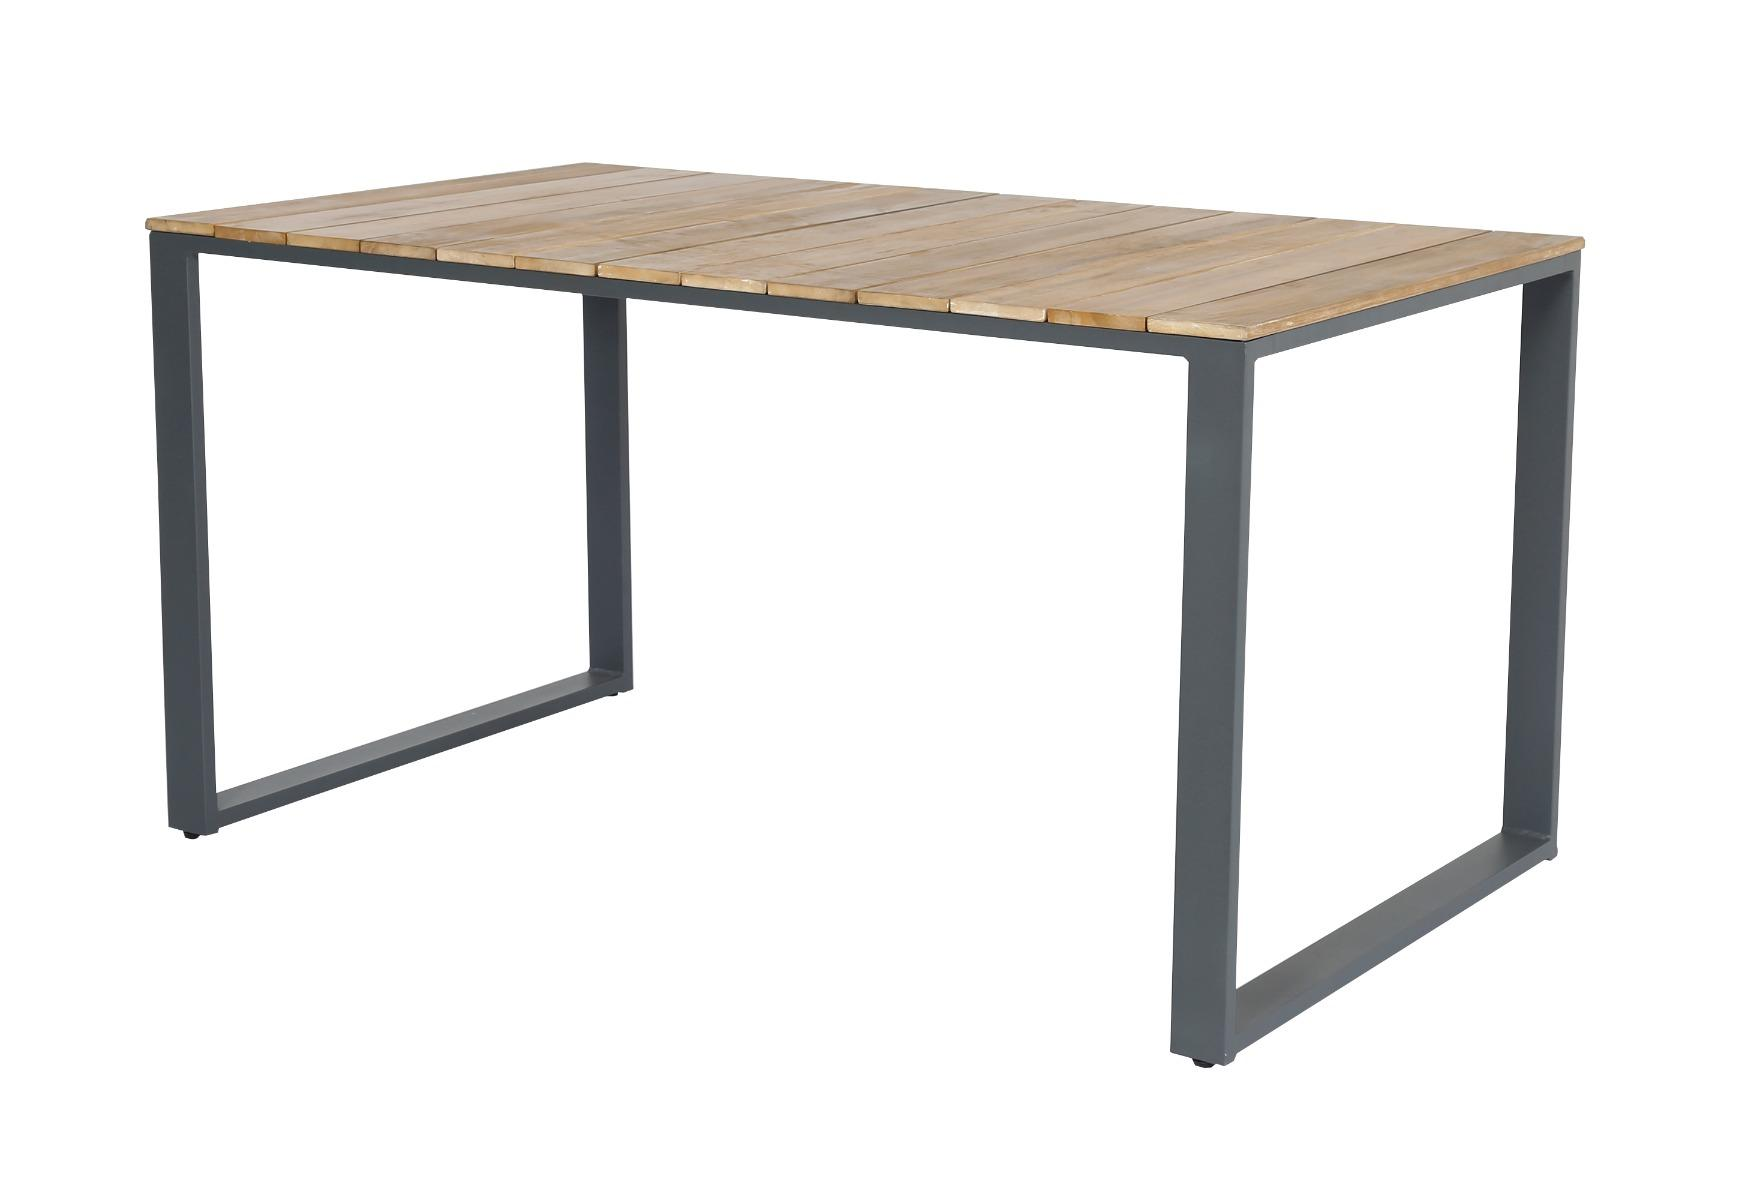 Korting Melton dining table 200x100x78 5cm